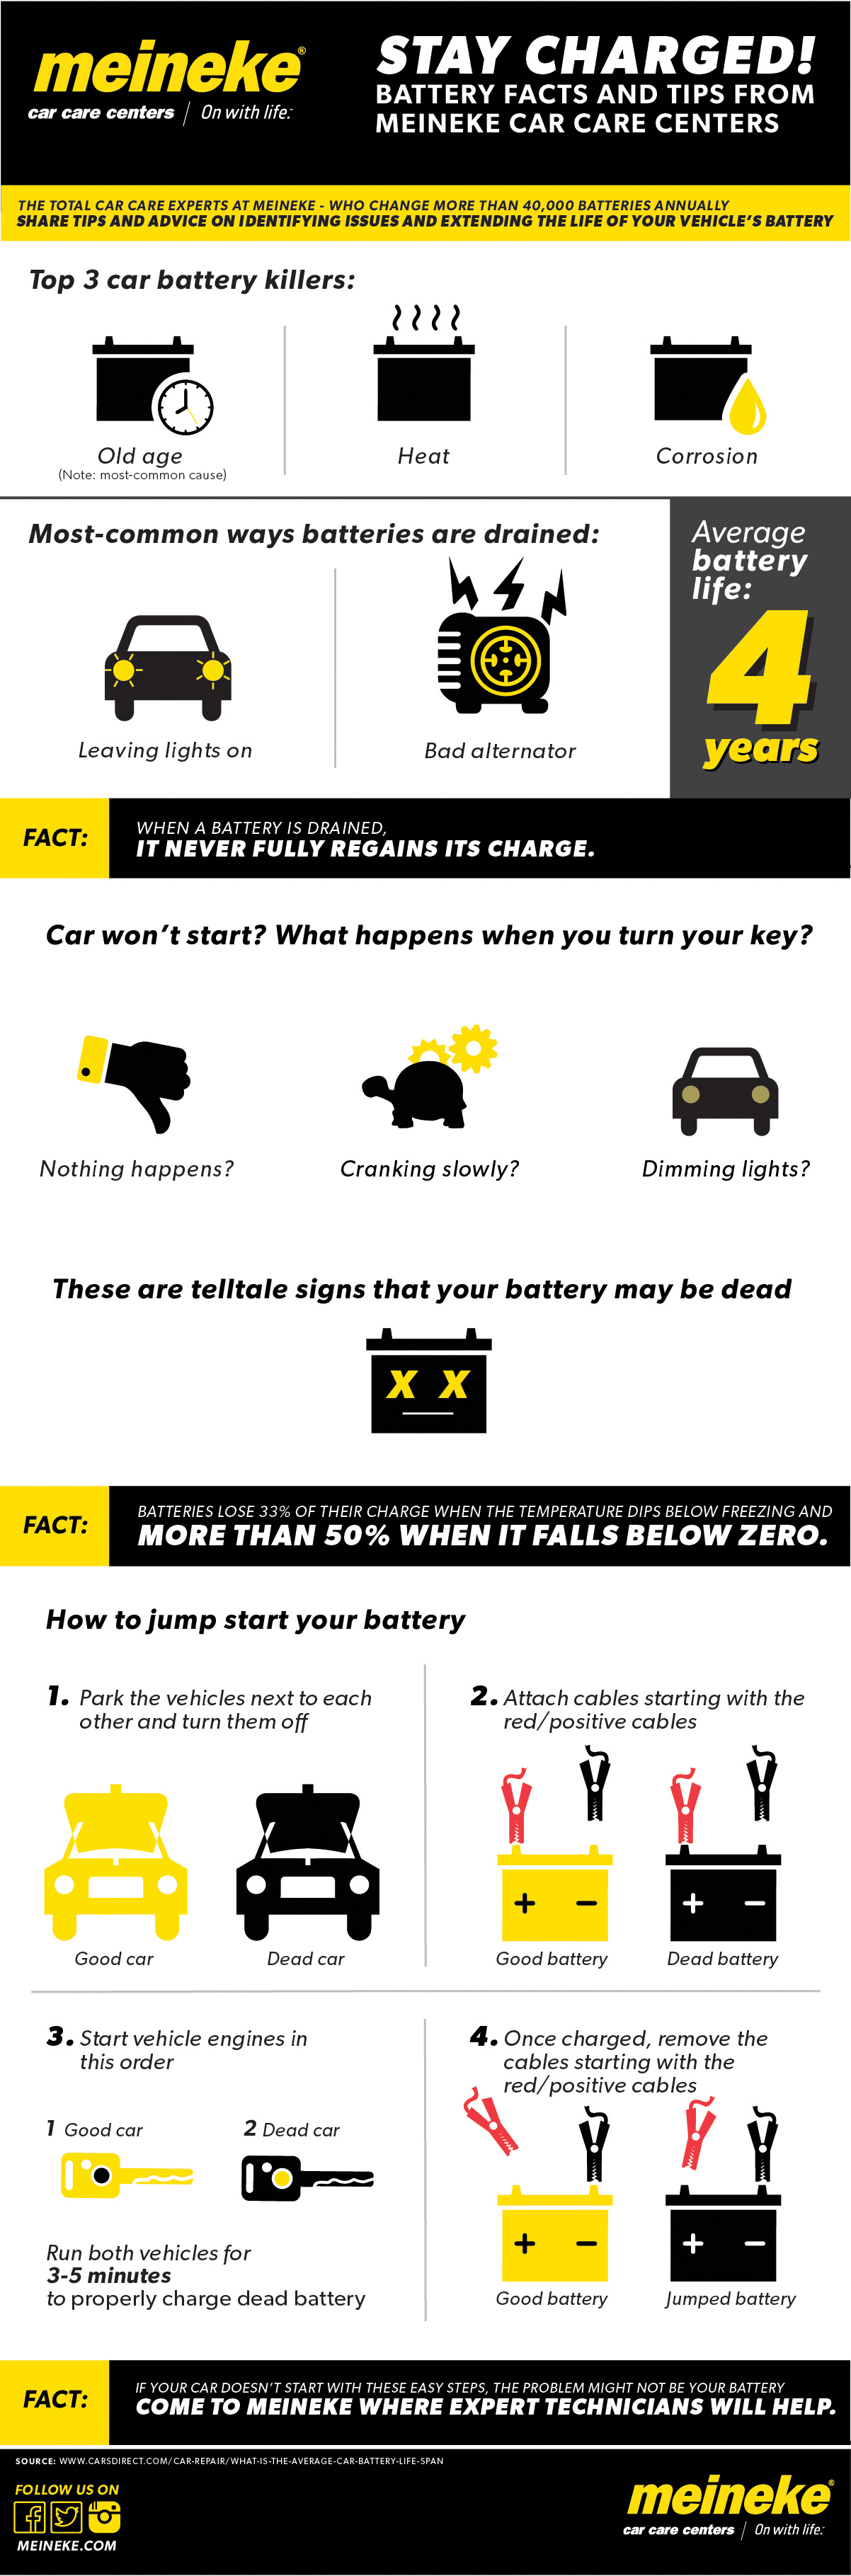 Stay Charged! Battery Tips and Facts from Meineke